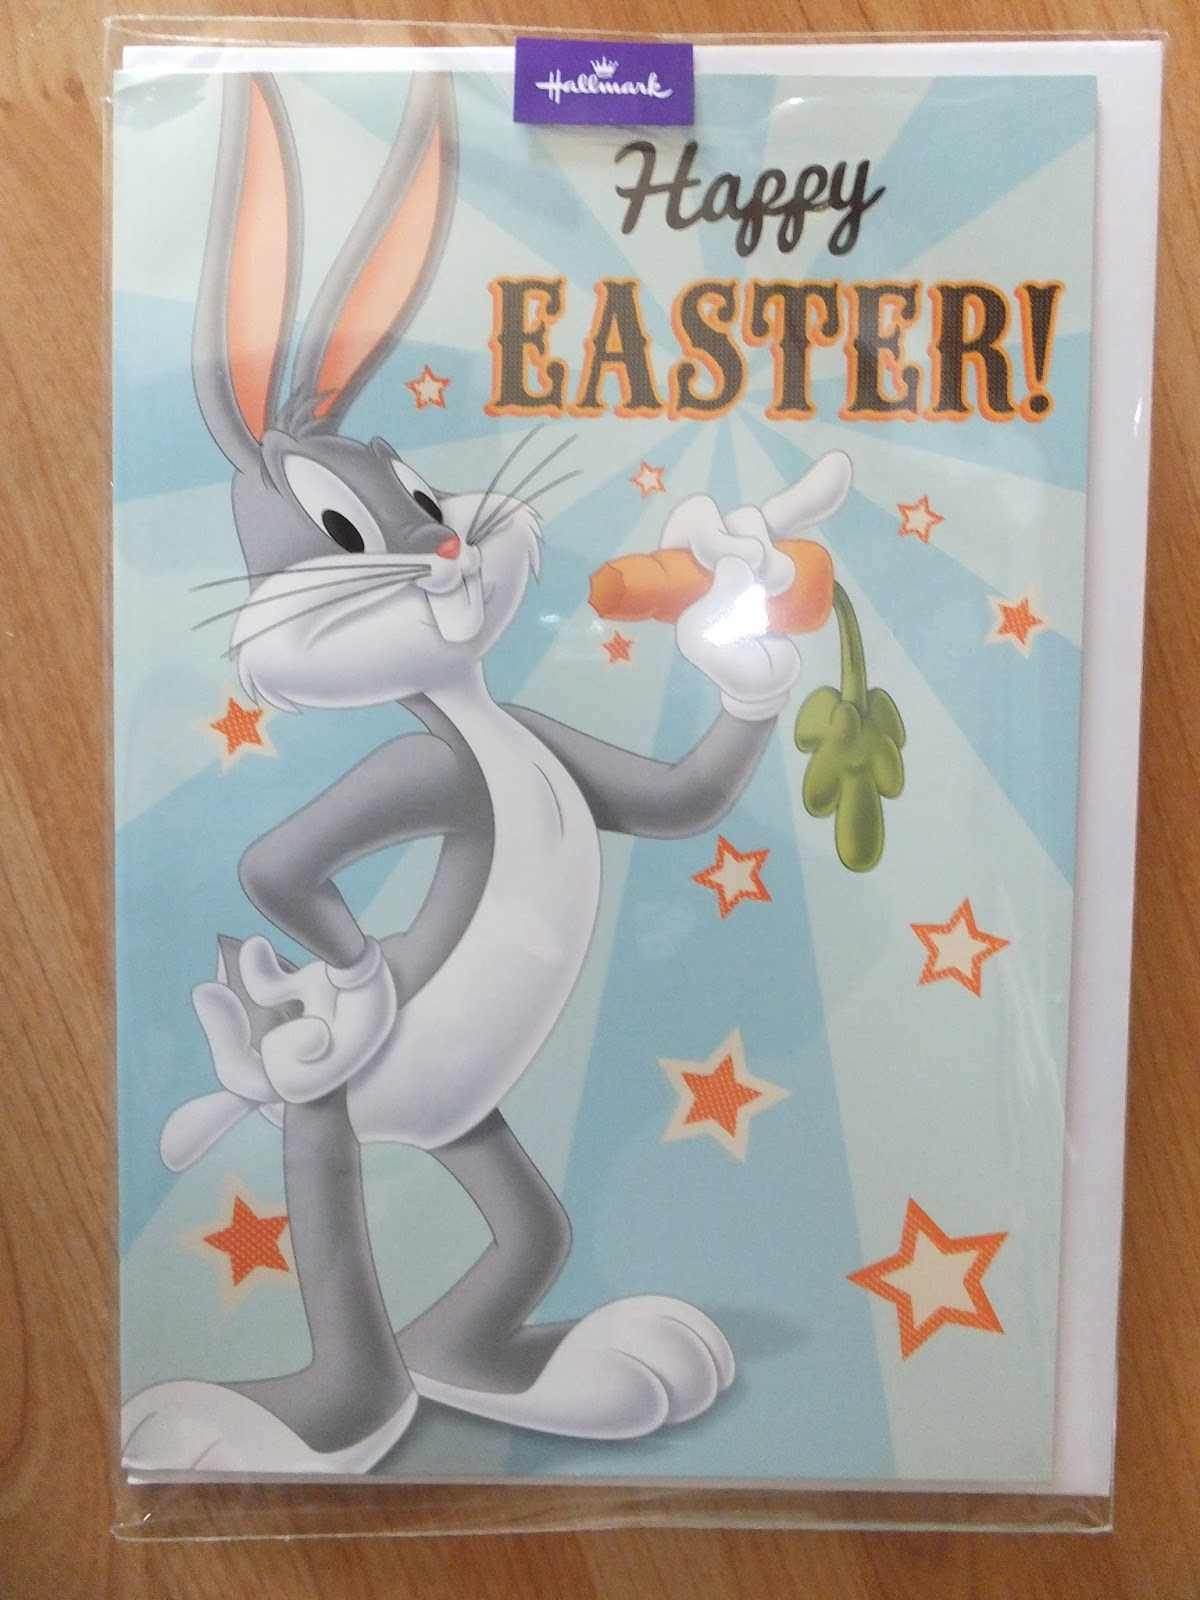 Easter gift guide 2017 accompany your easter wishes or gifts with this cute bugs bunny easter card rrp 150 from a range at morrisons negle Choice Image